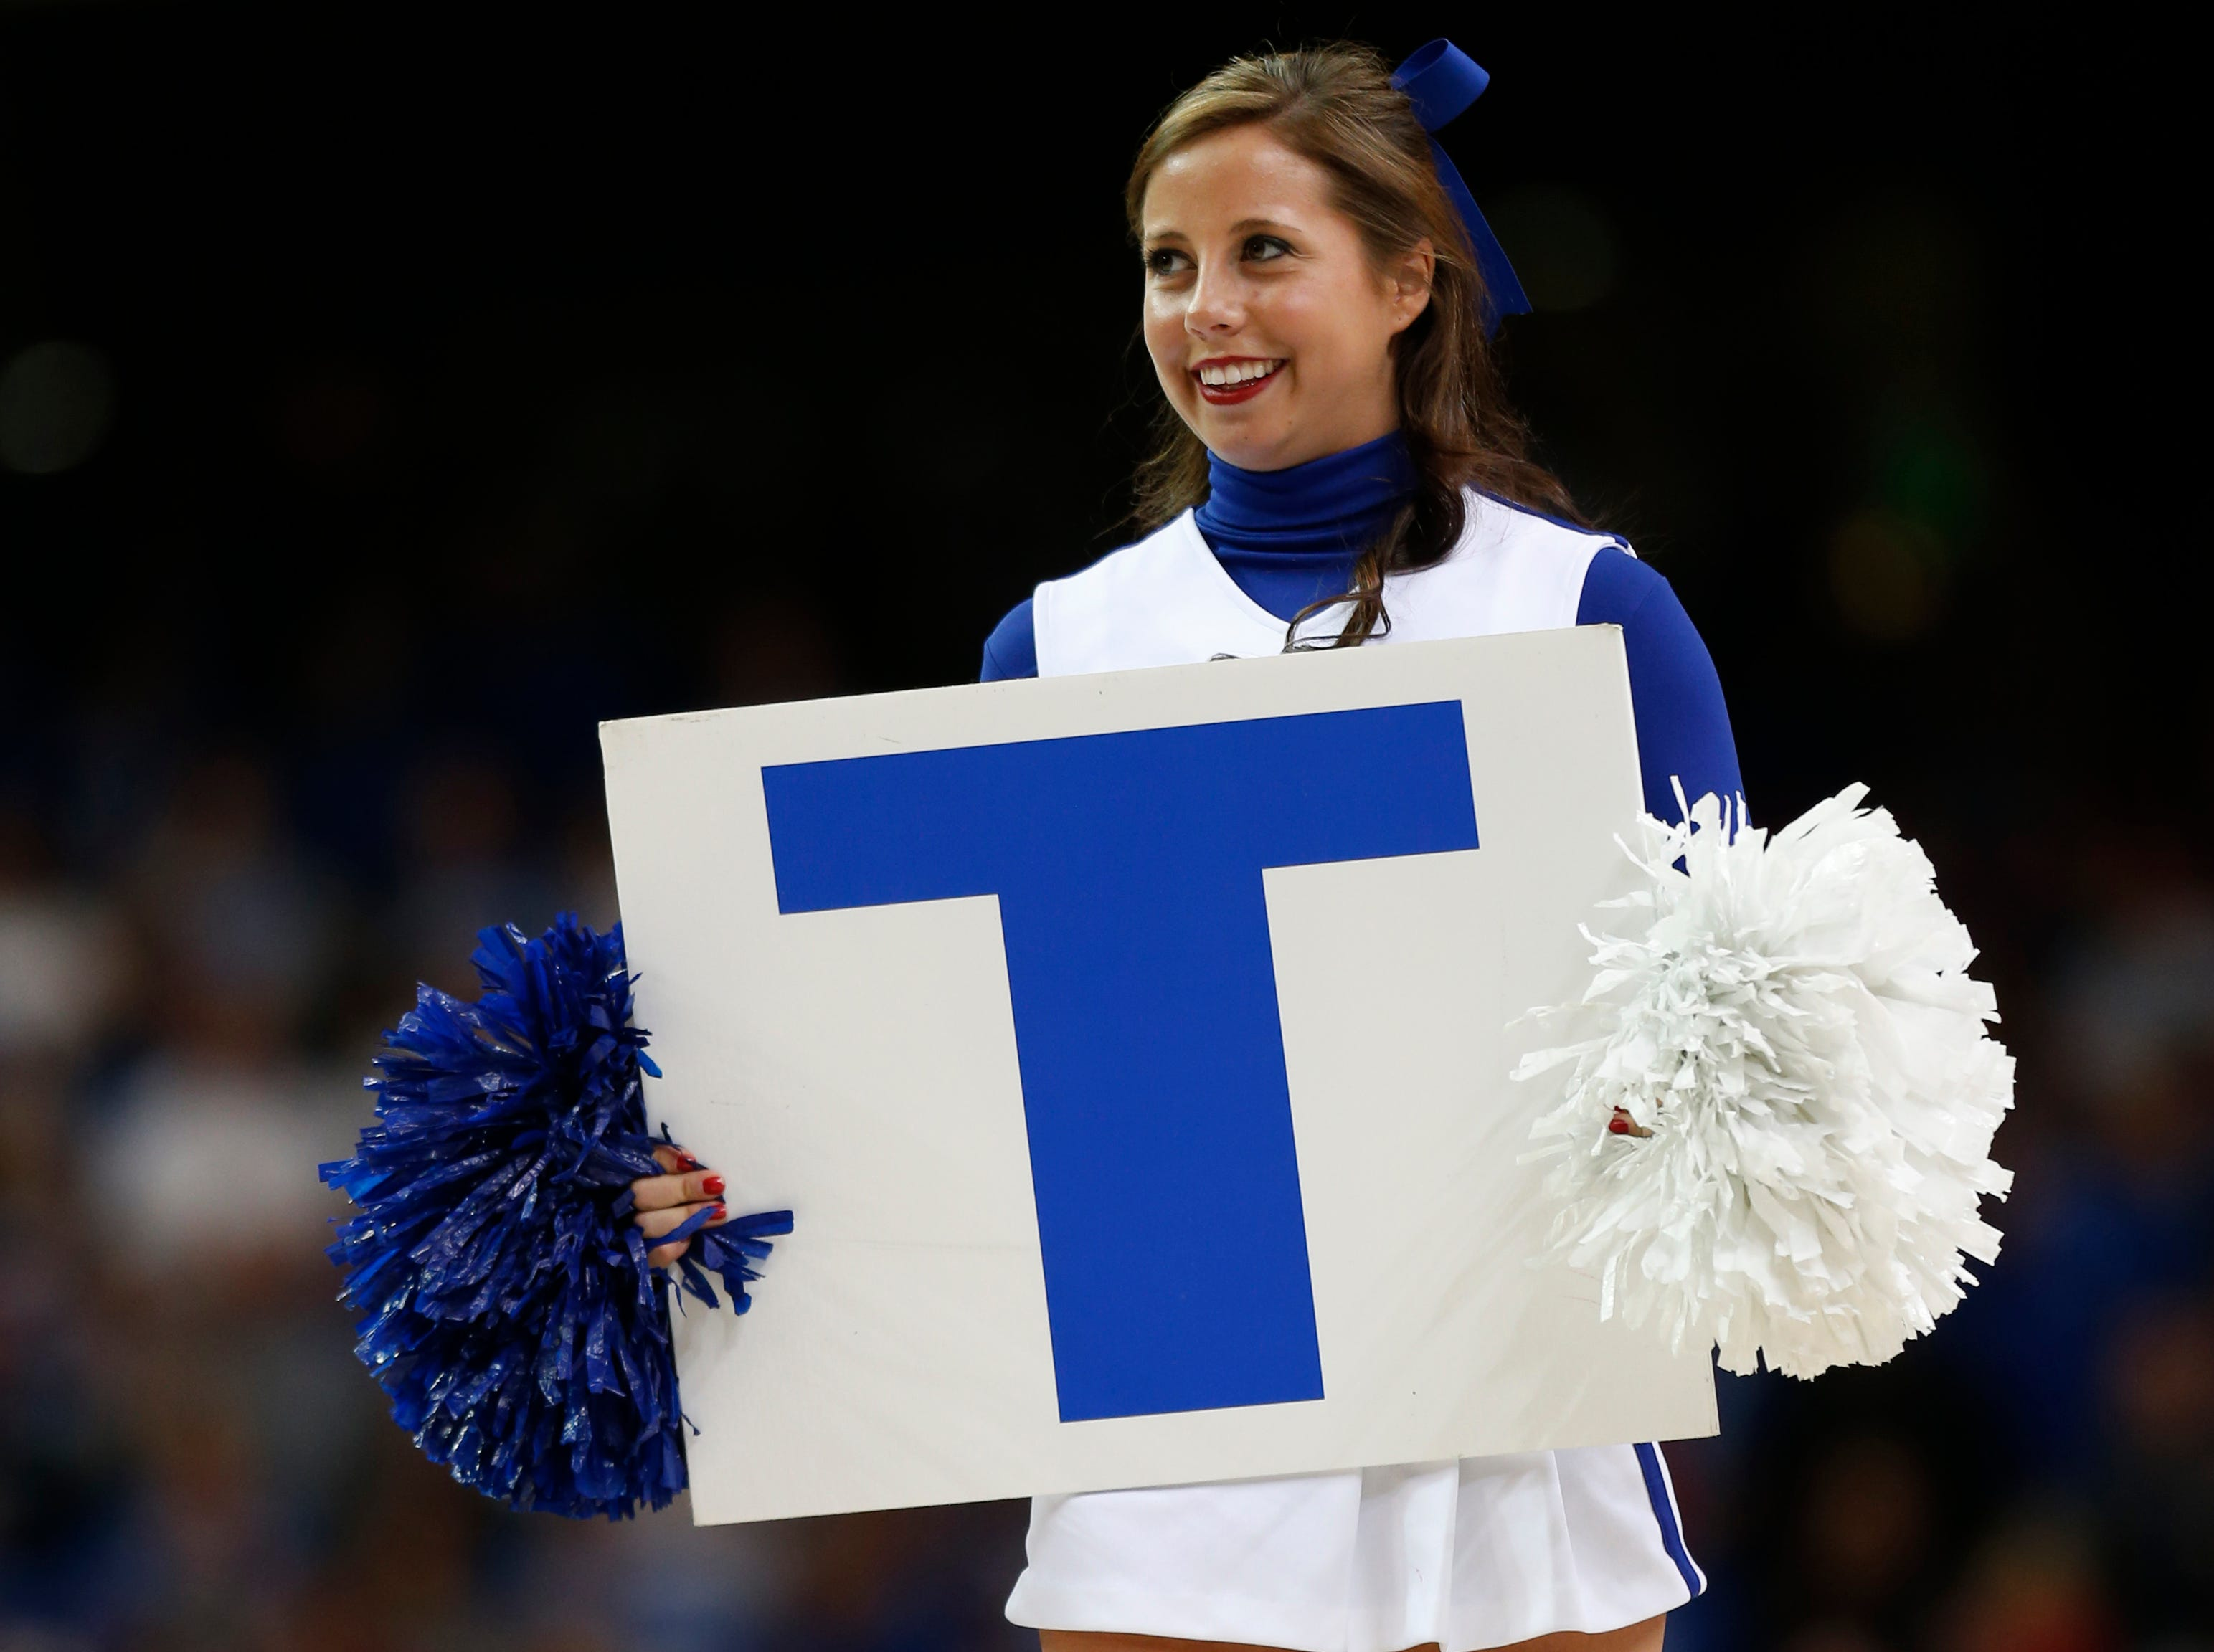 Kentucky cheerleaders perform during the first half of an NCAA college basketball game against Georgia in the semifinal round of the Southeastern Conference men's tournament, Saturday, March 15, 2014, in Atlanta. (AP Photo/John Bazemore)